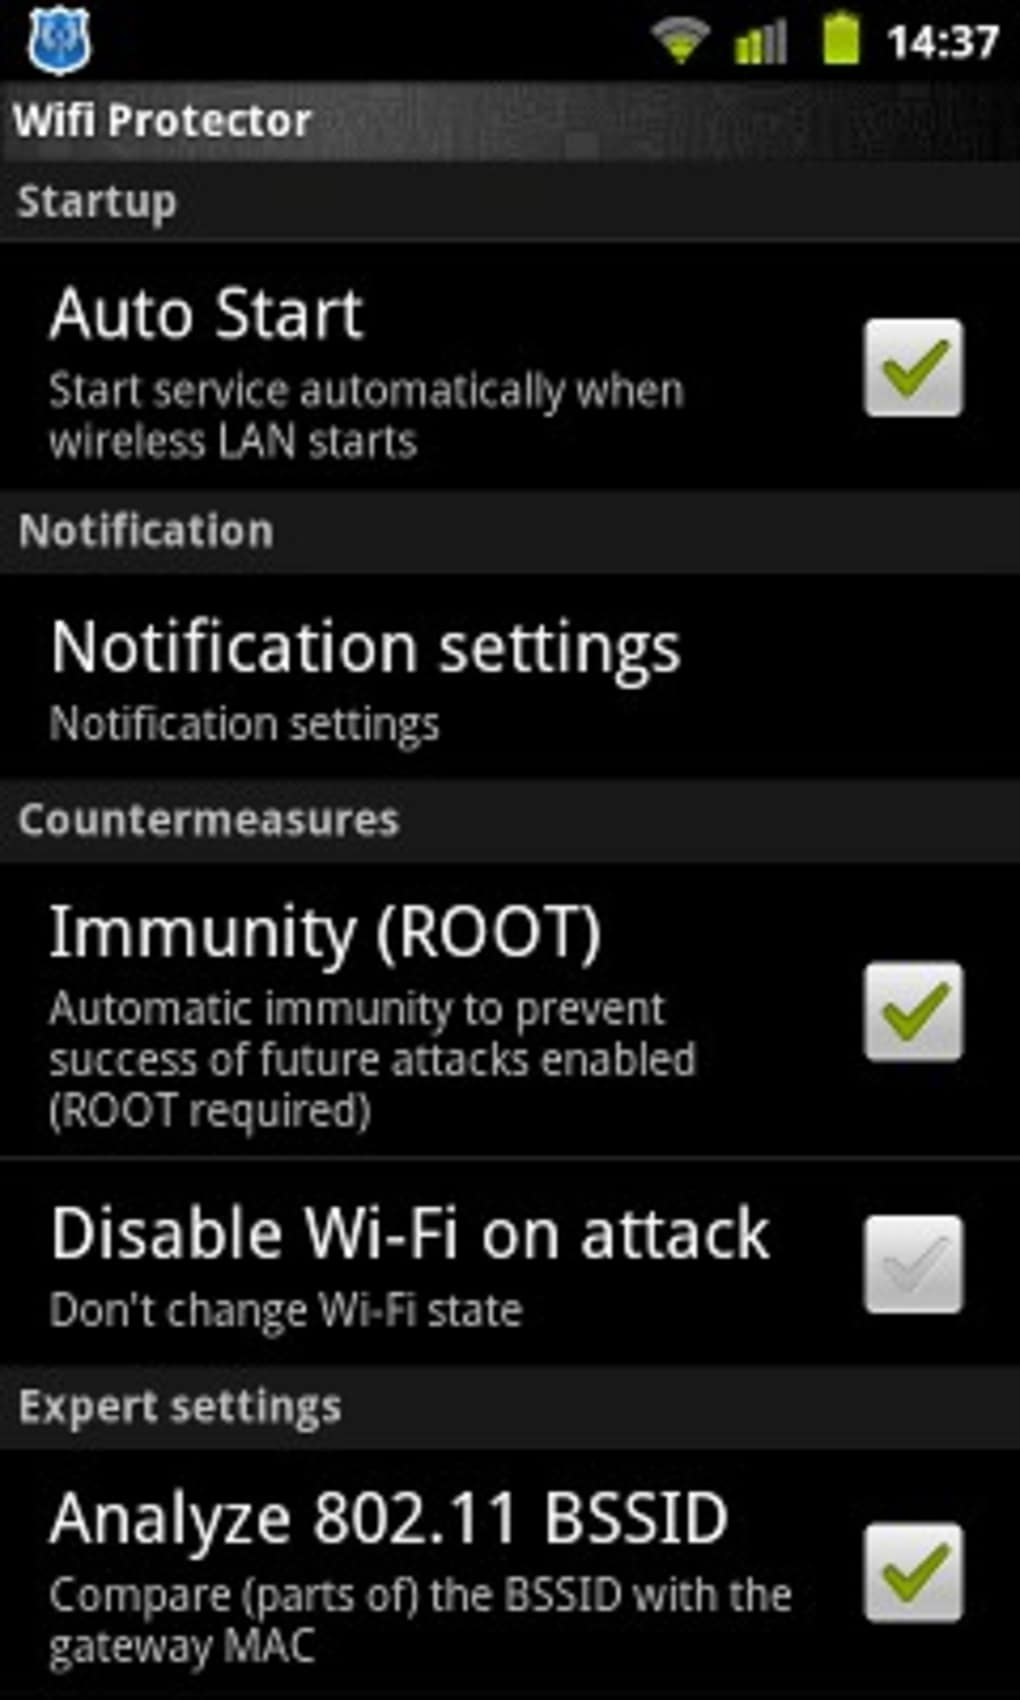 wifi protector full version android